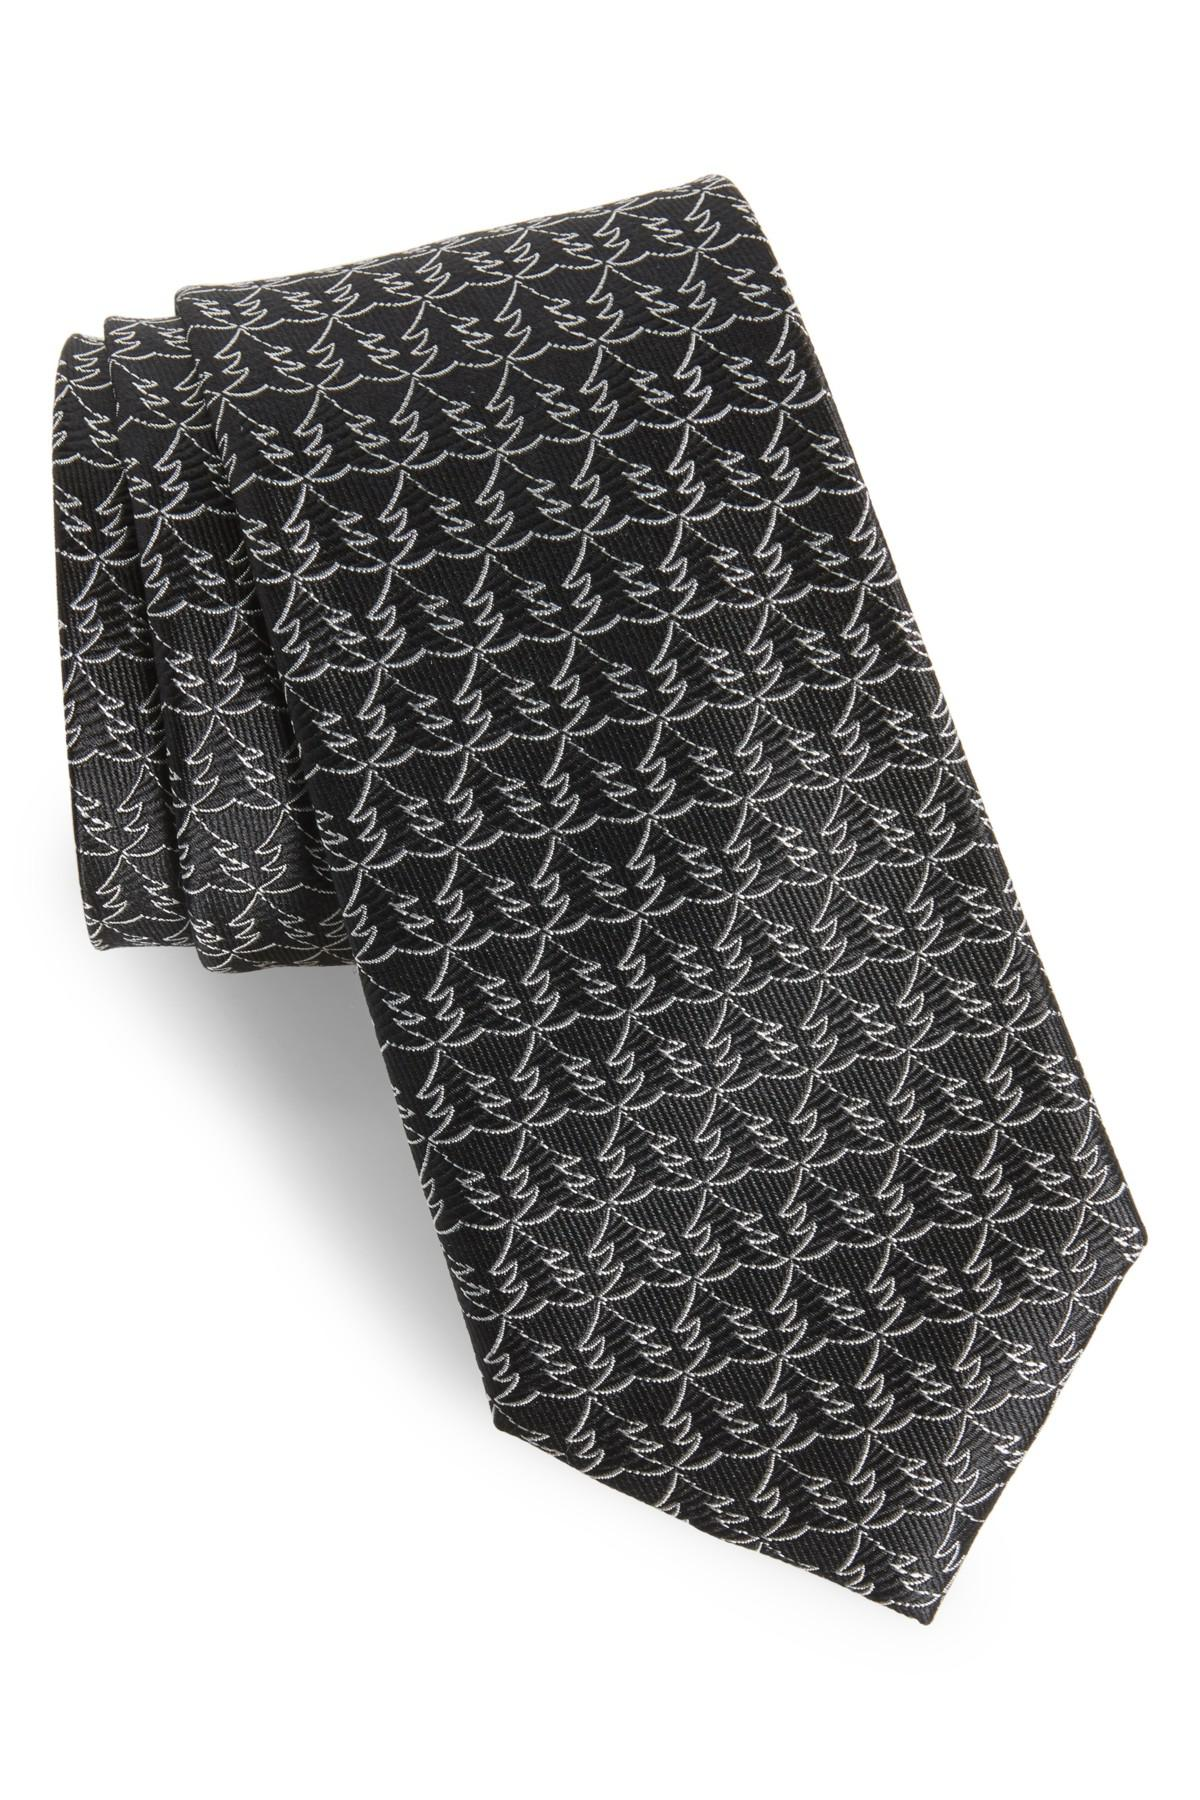 Lyst - Nordstrom Christmas Tree Silk Tie in Black for Men